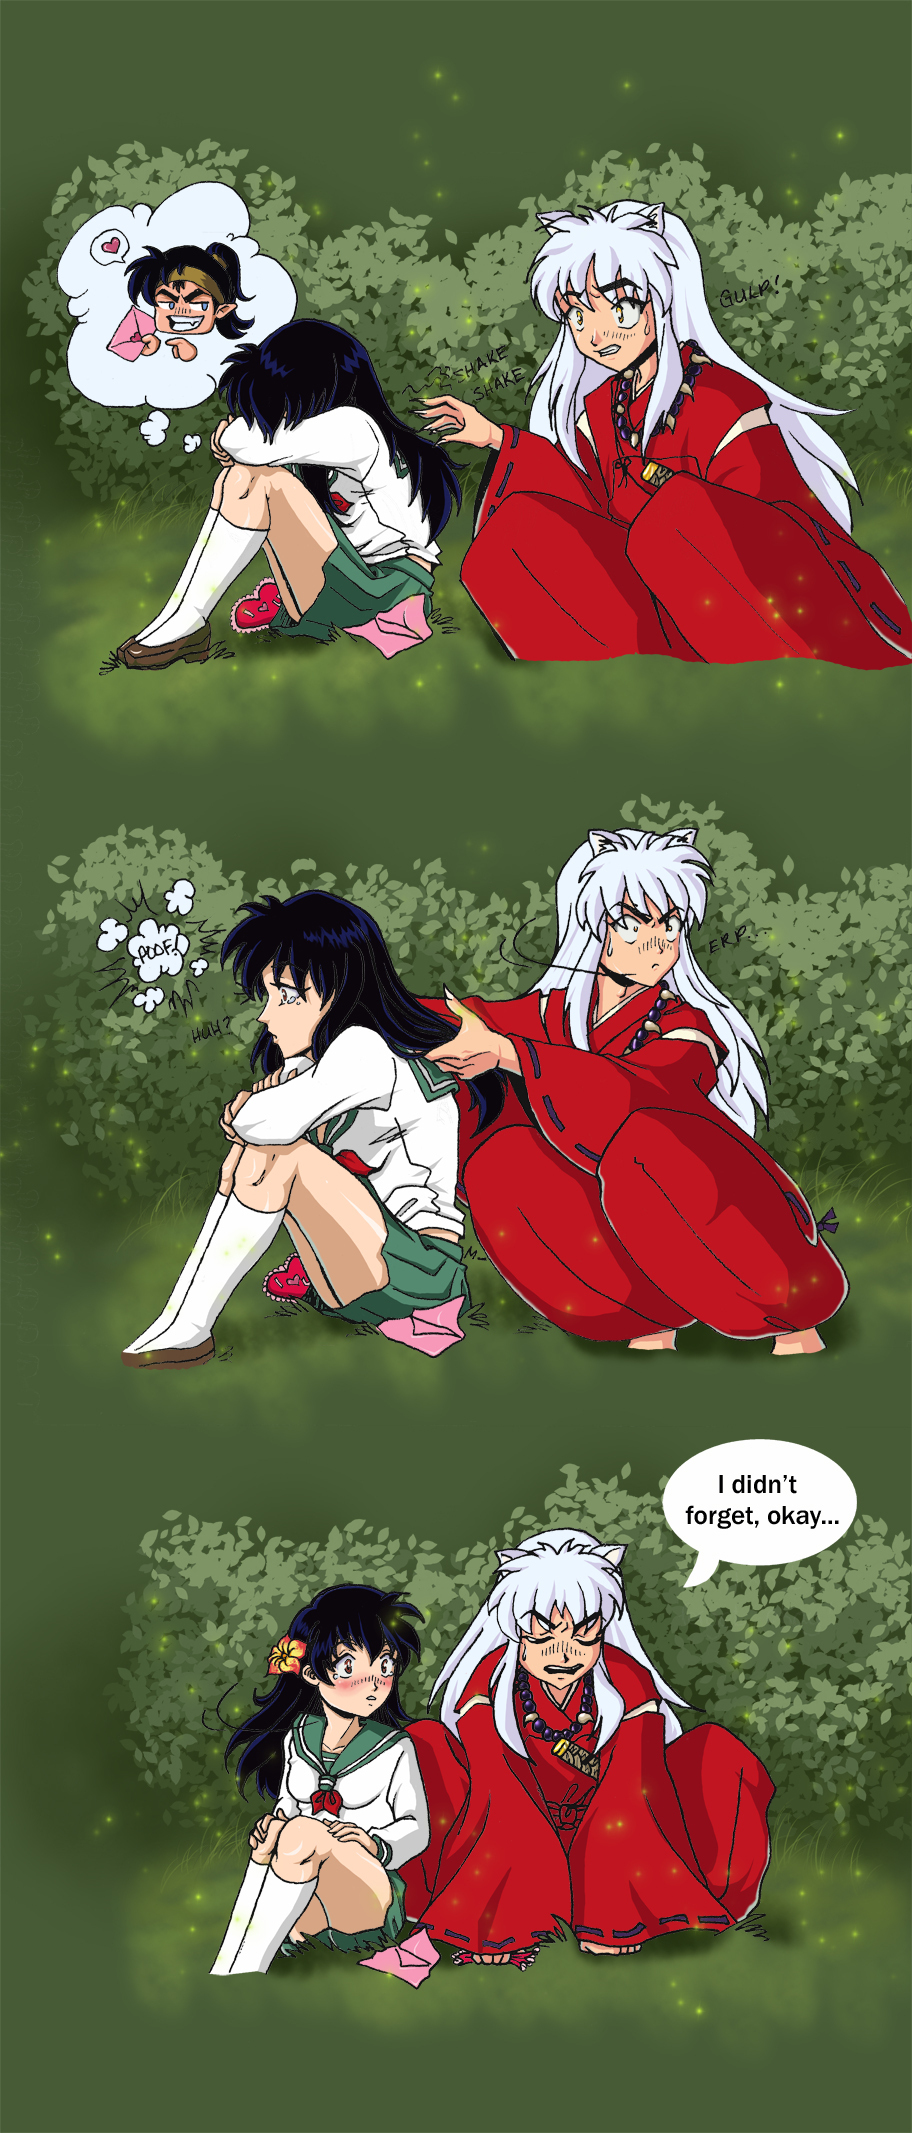 Inuyasha and Kagome Doing It http://www.fanpop.com/clubs/inuyasha/images/19238537/title/inuyasha-kagome-fanart